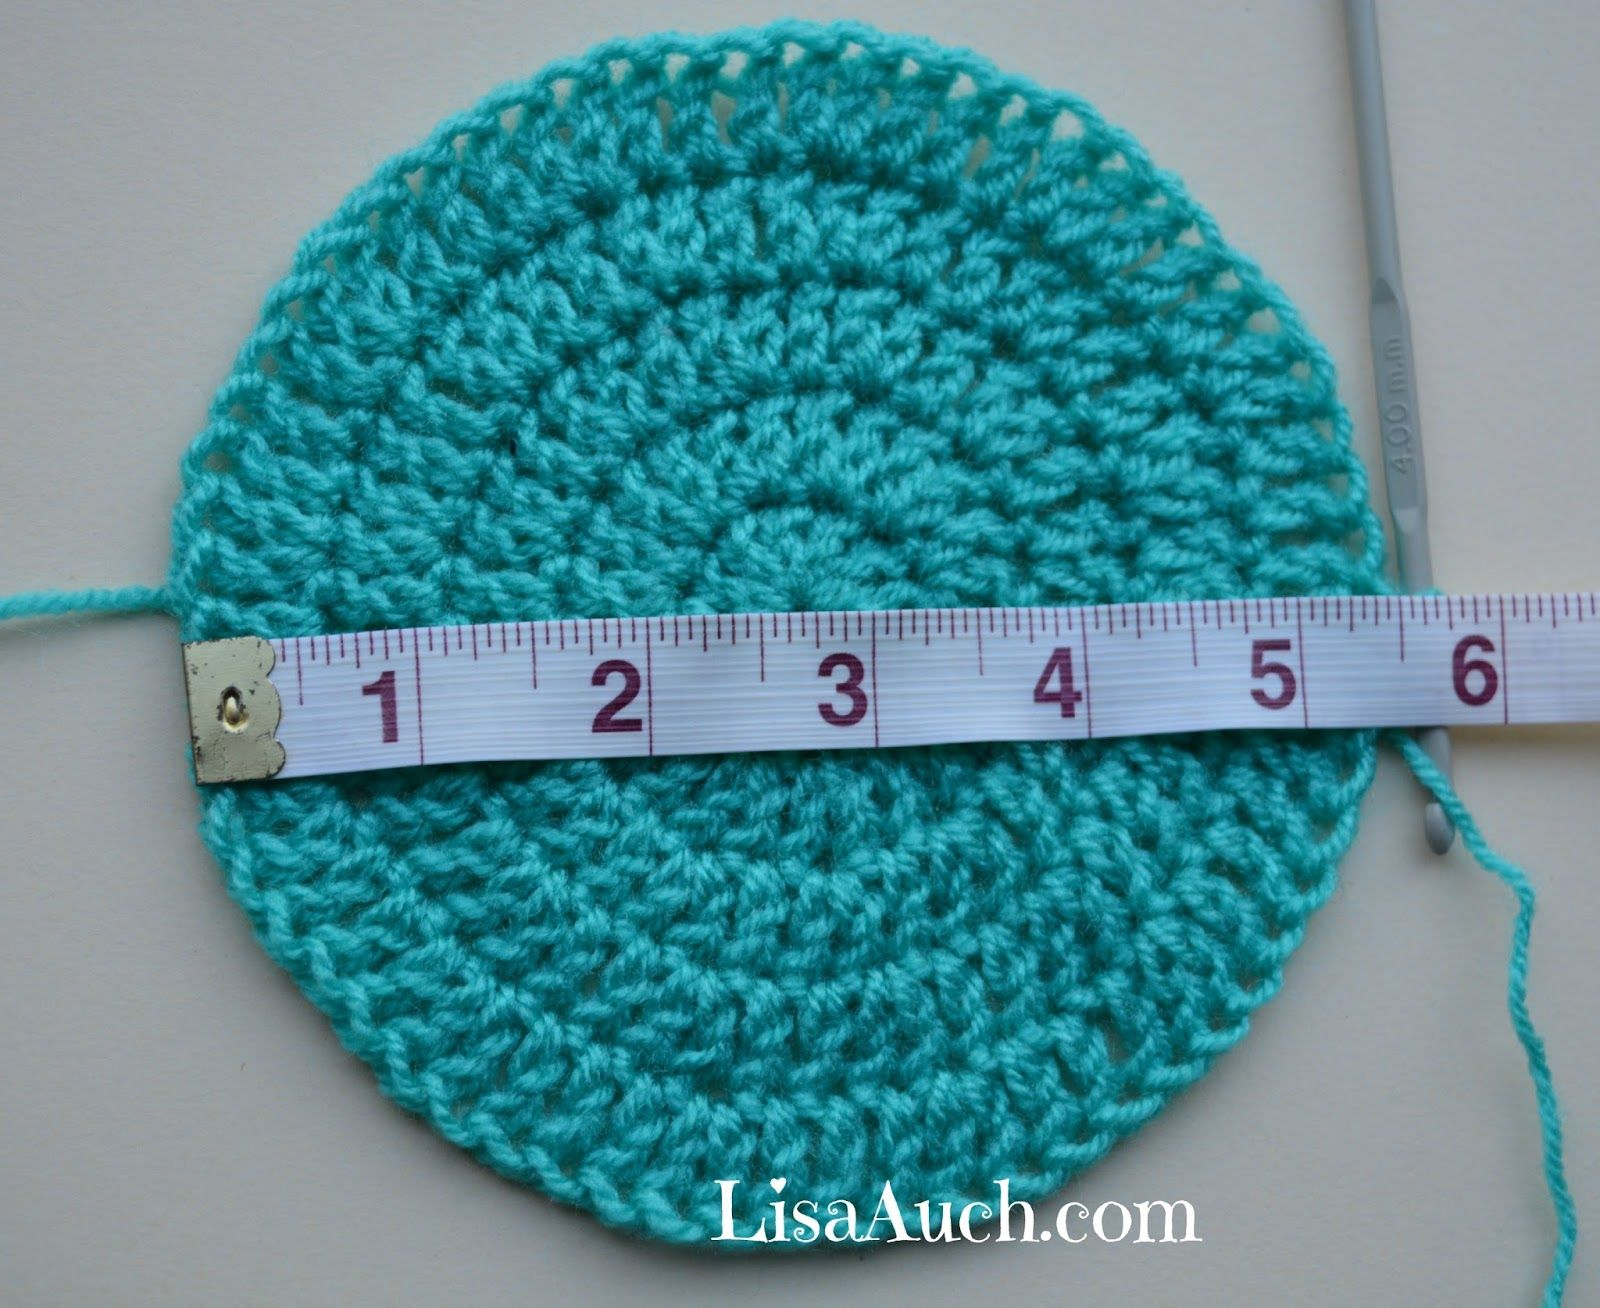 Crochet Baby Bonnet Pattern Cool Inspiration Design